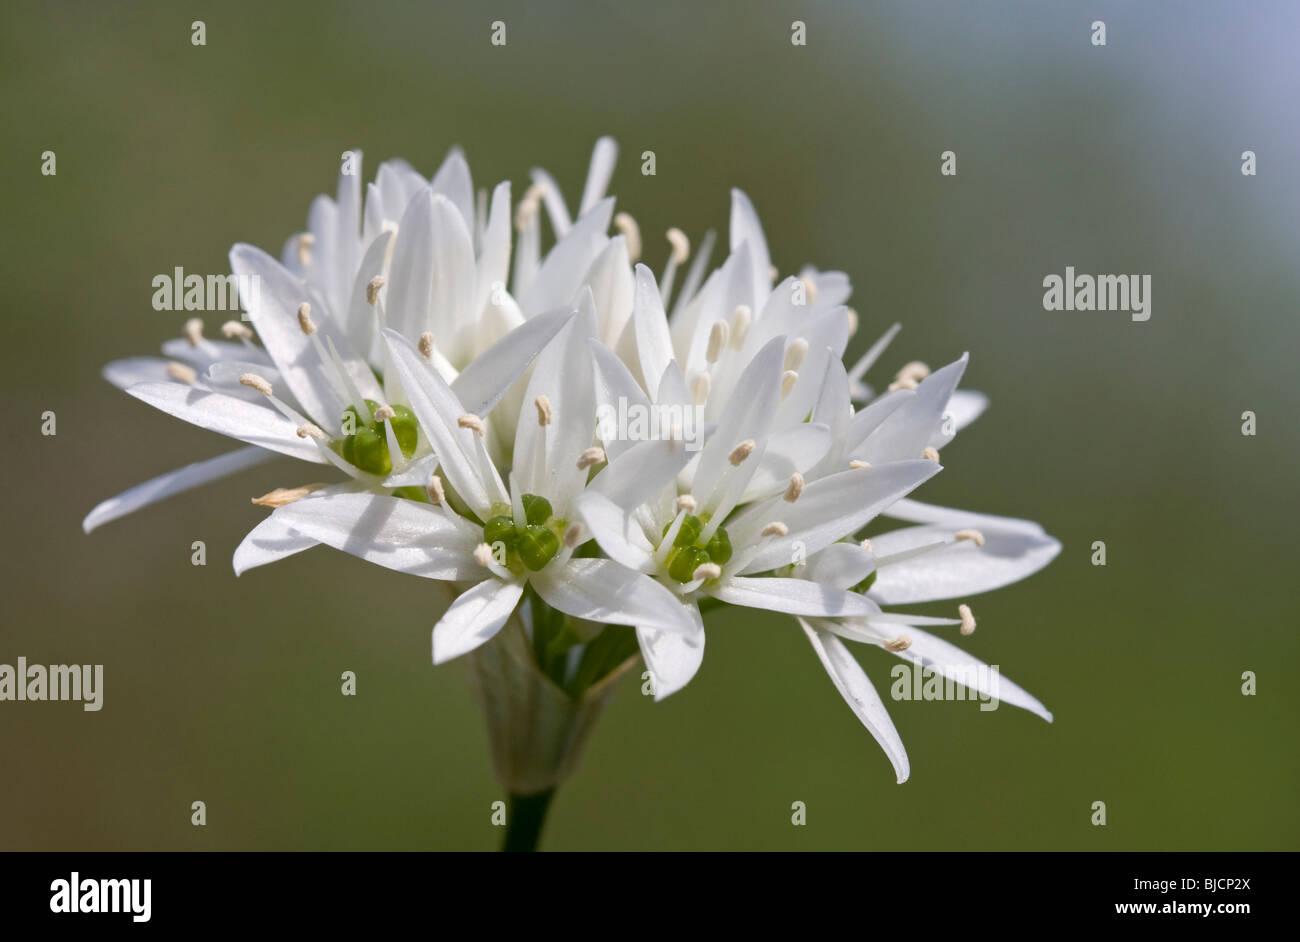 Blooming ramson, Allium ursinum Stock Photo